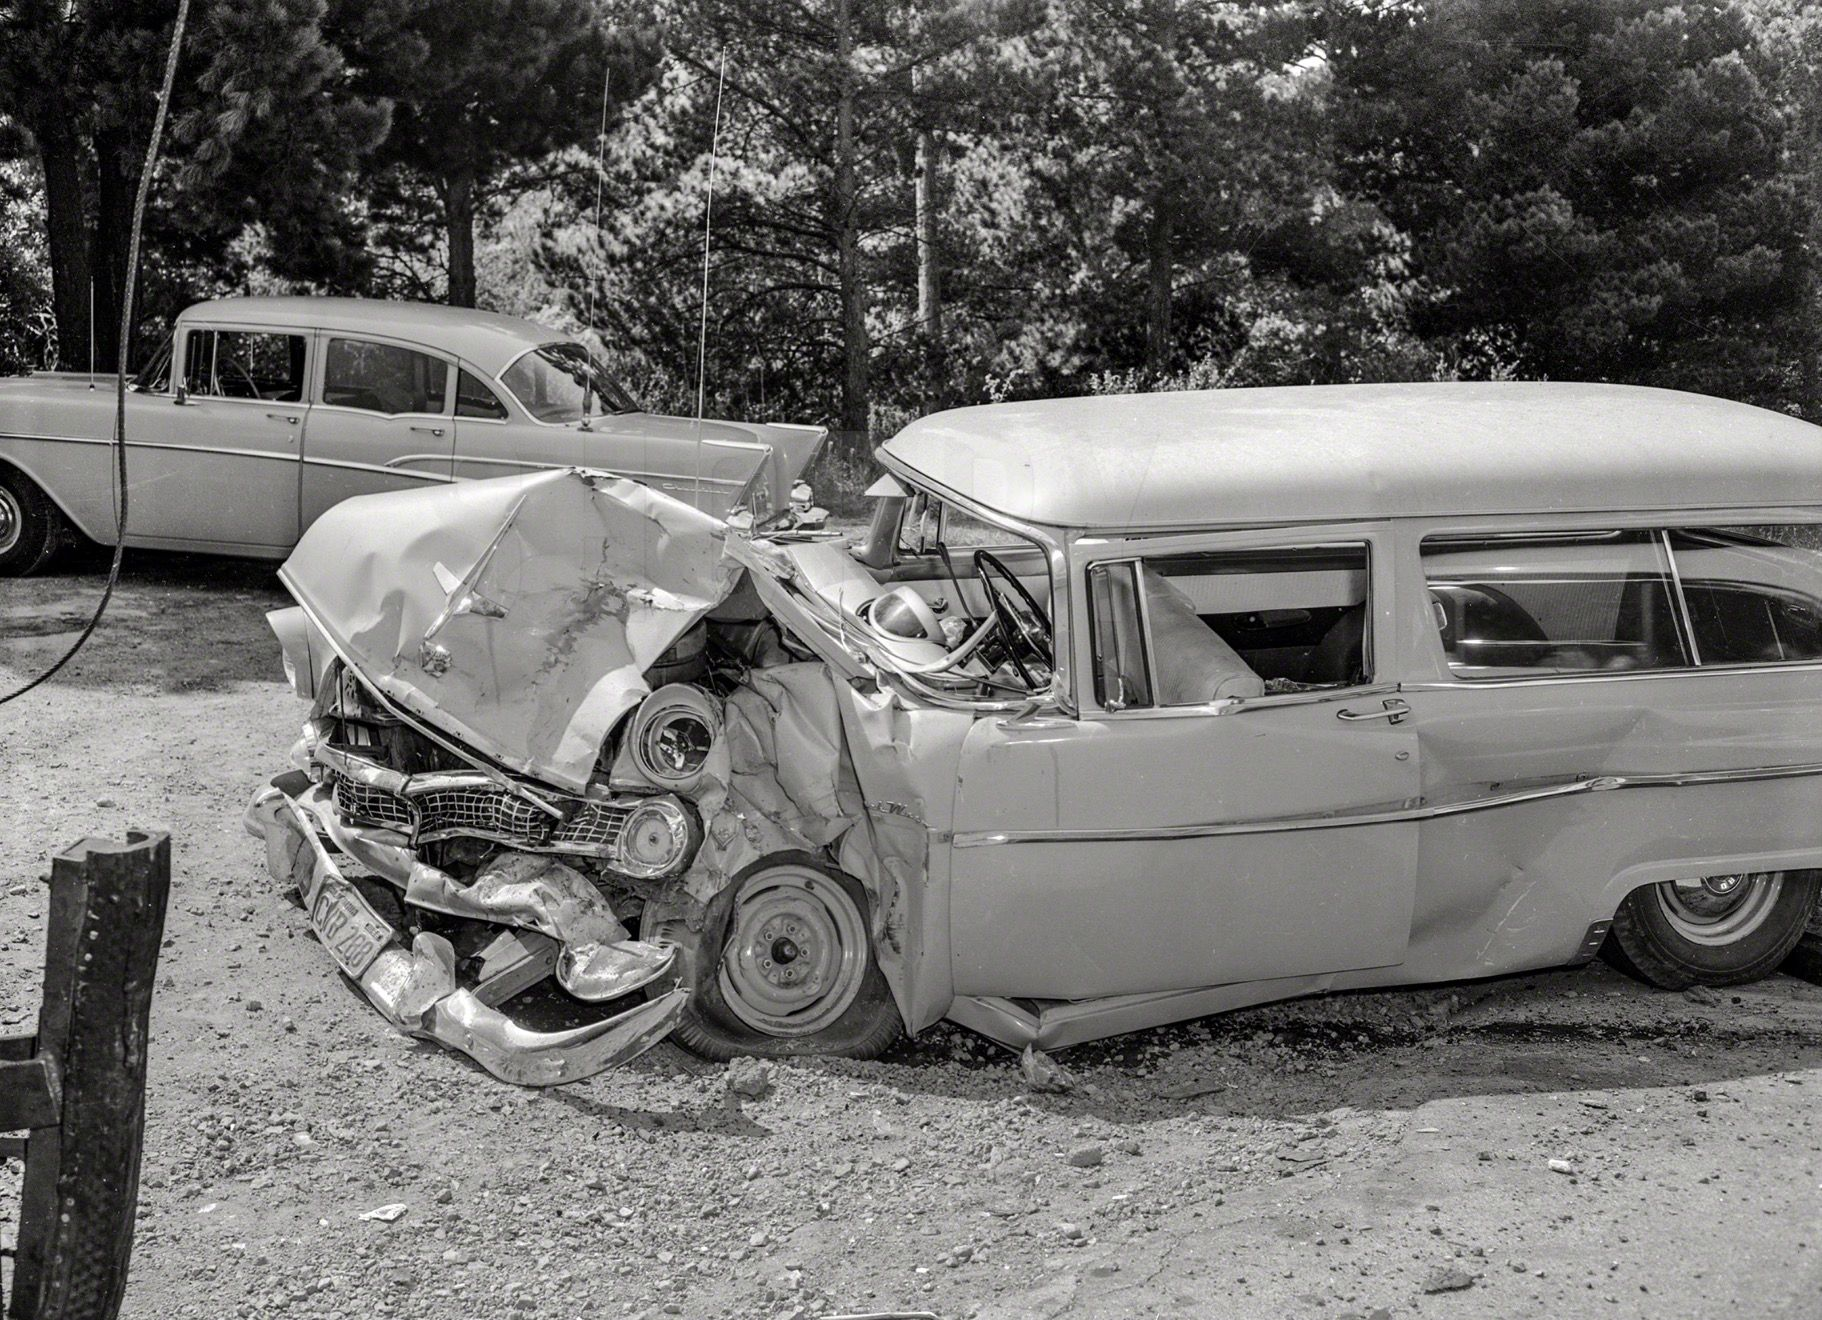 Sam kinison accident scene photos - The Shorpy Store Prints Suitable For Framing